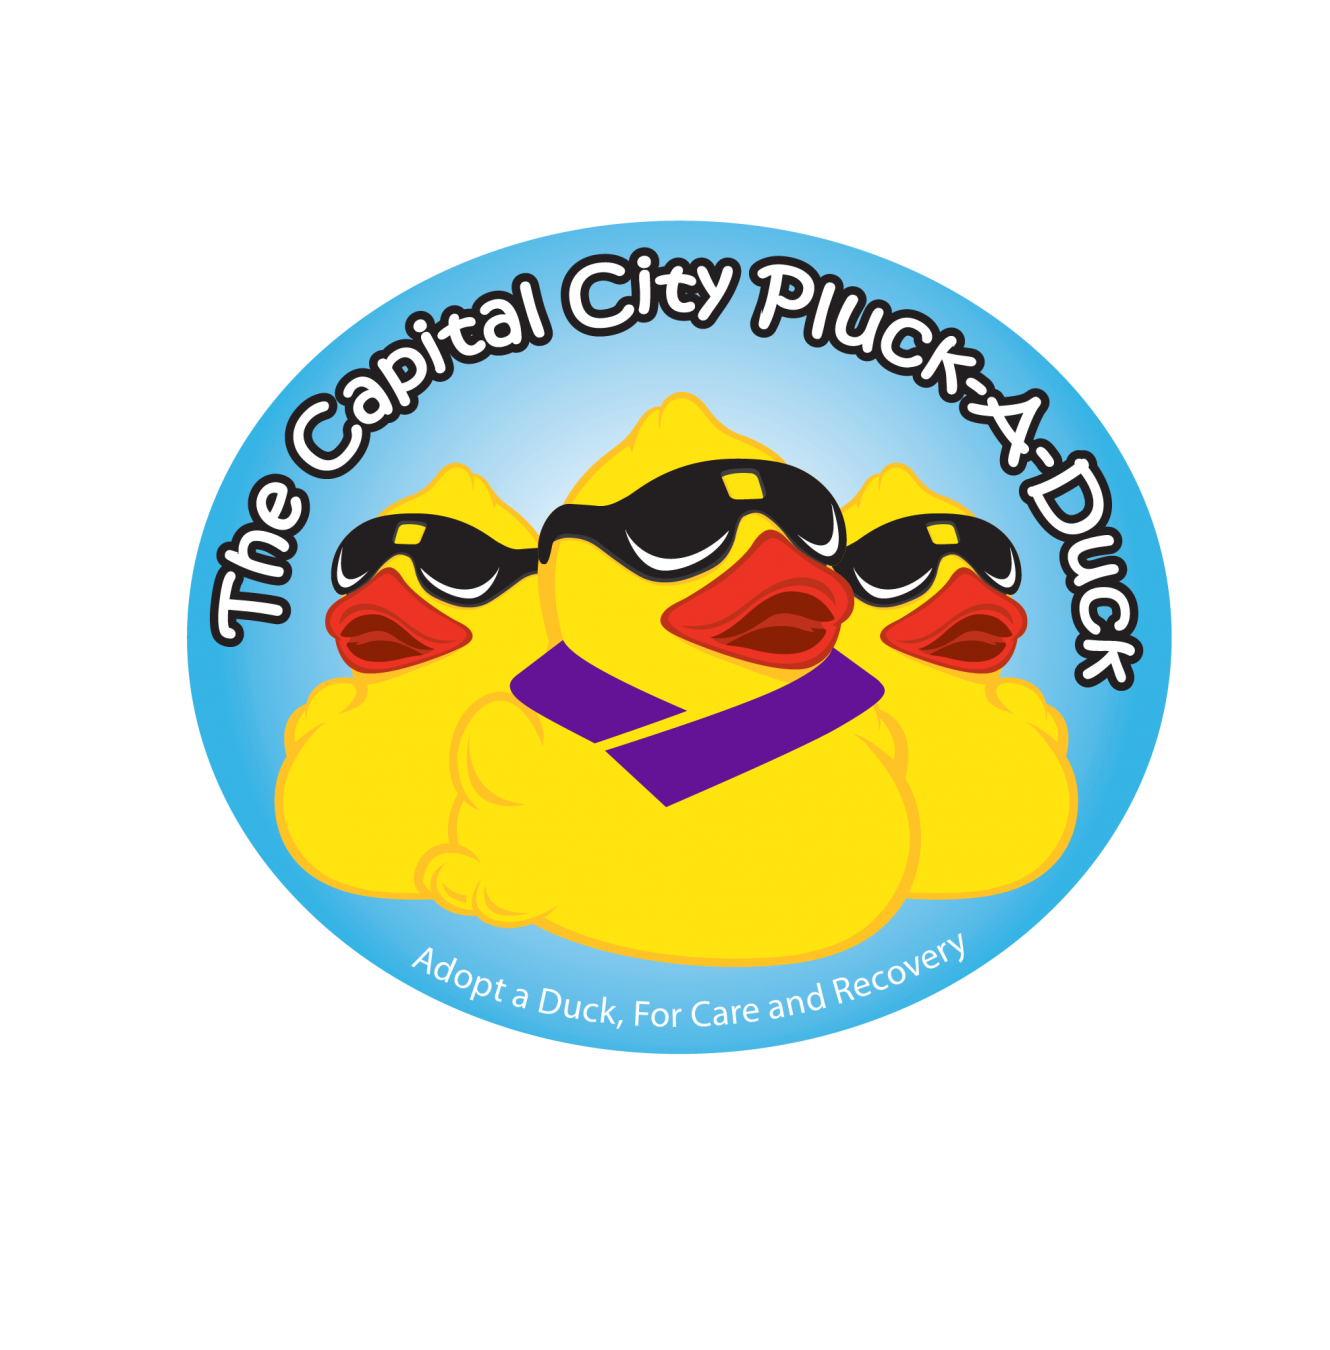 The Capital City Pluck-a-Duck